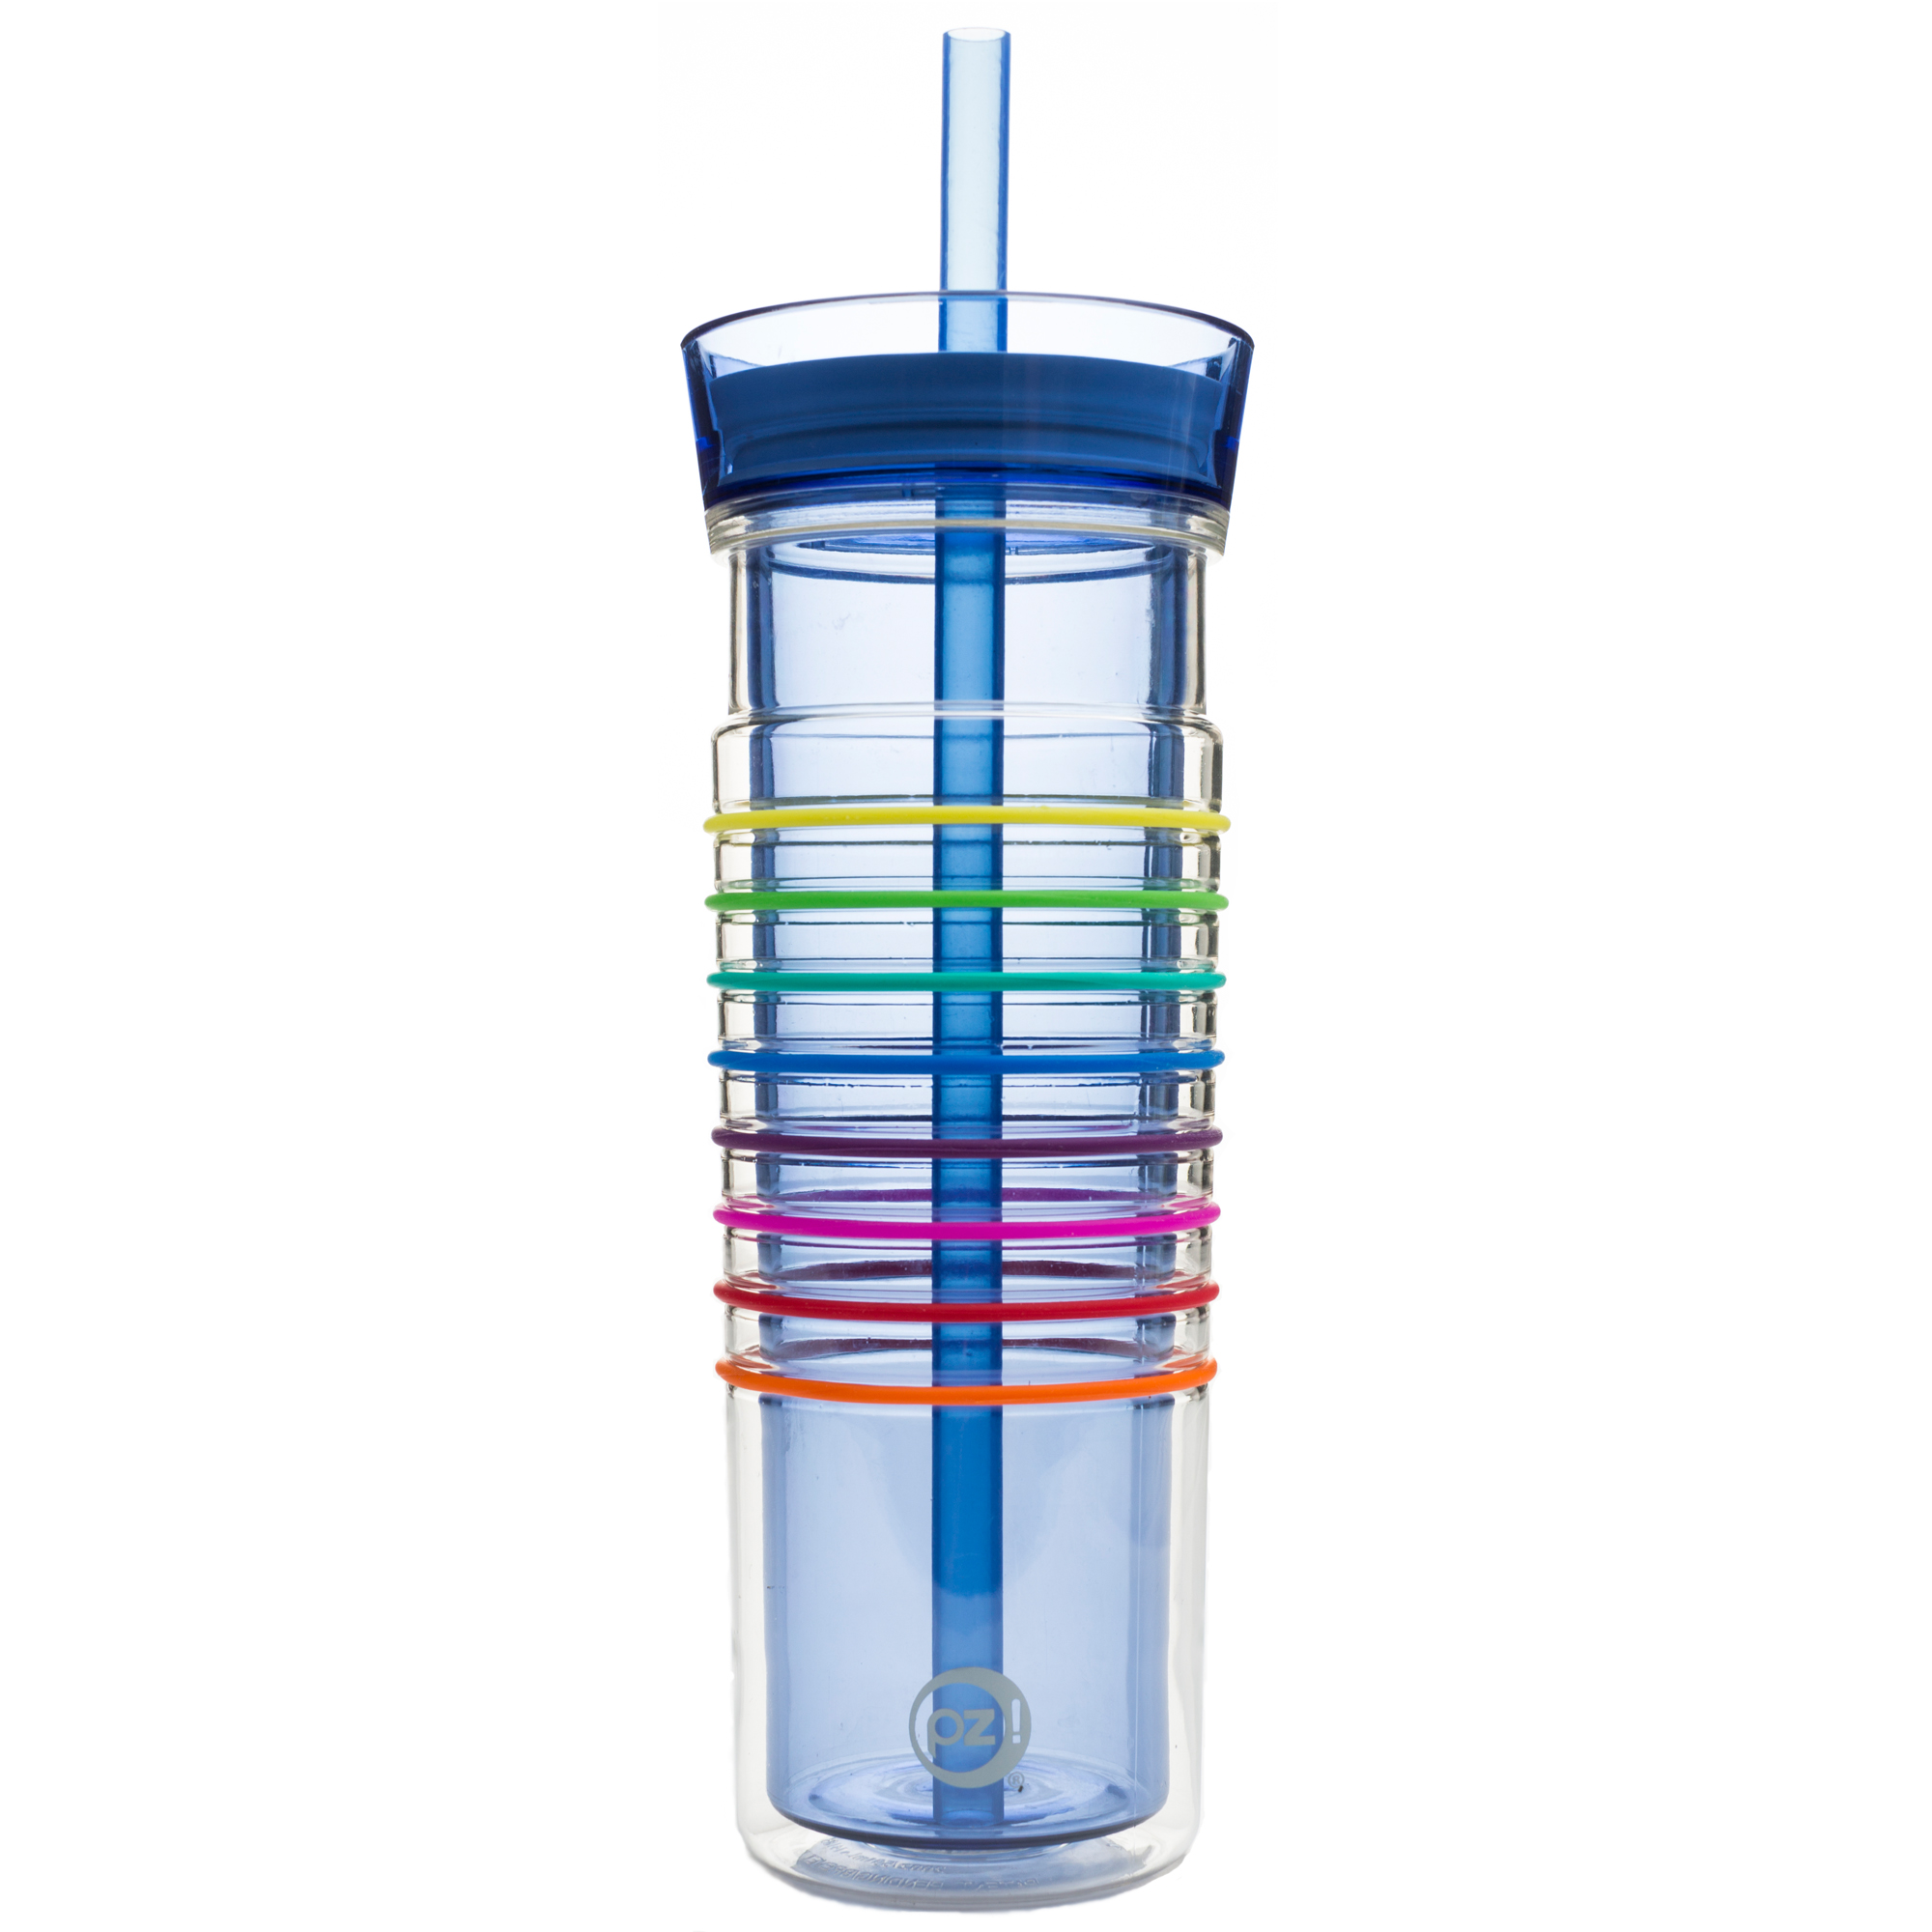 HydraTrak 20 ounce Insulated Tumbler, Periwinkle slideshow image 1